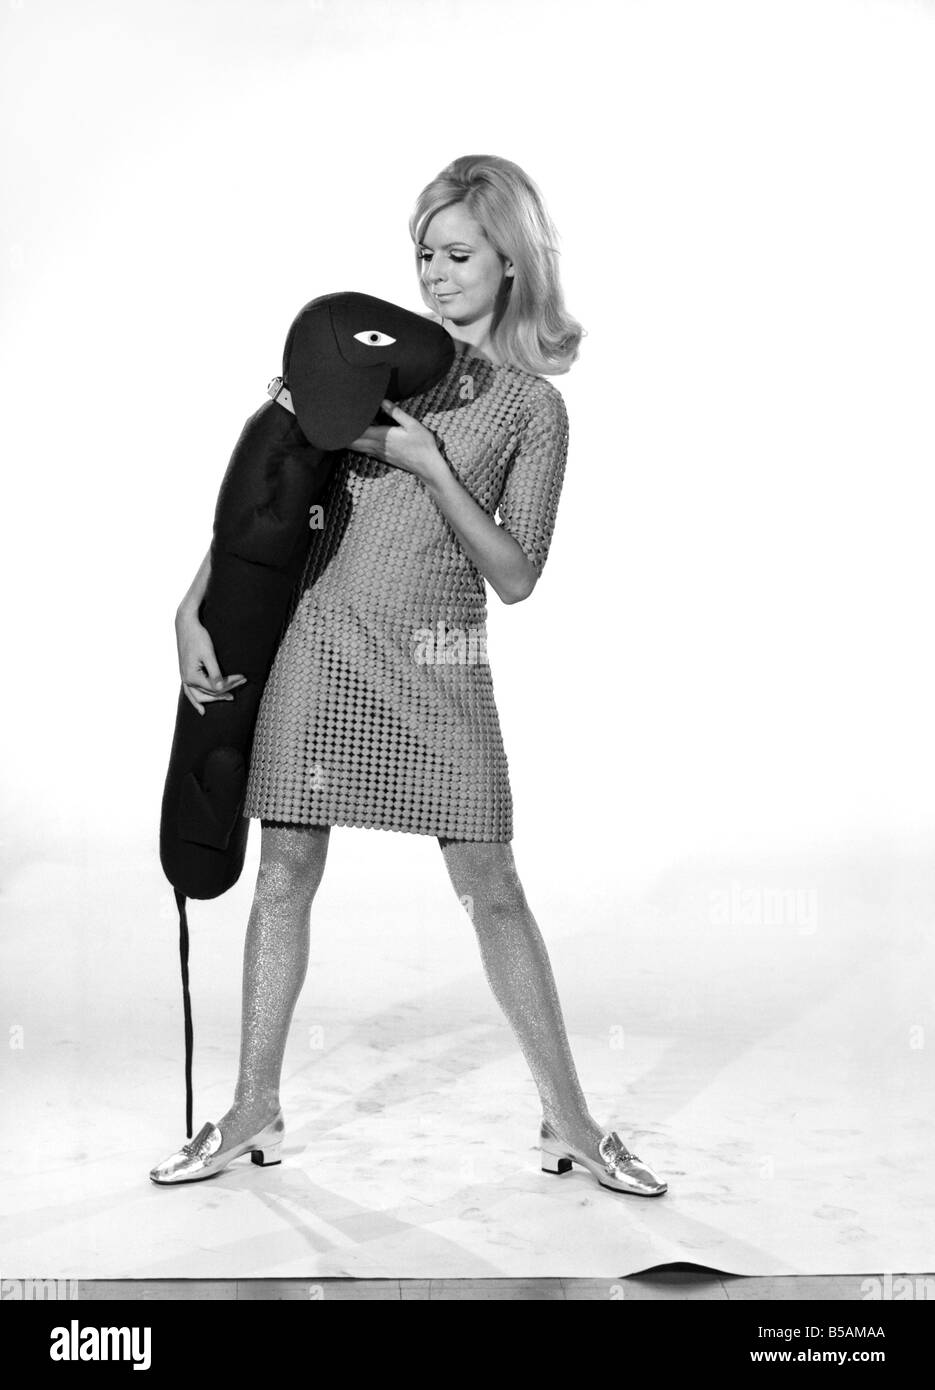 Model Anna Maria Greaves with Roly dog soft toy and draft excluder. 1959 D169-012 - Stock Image